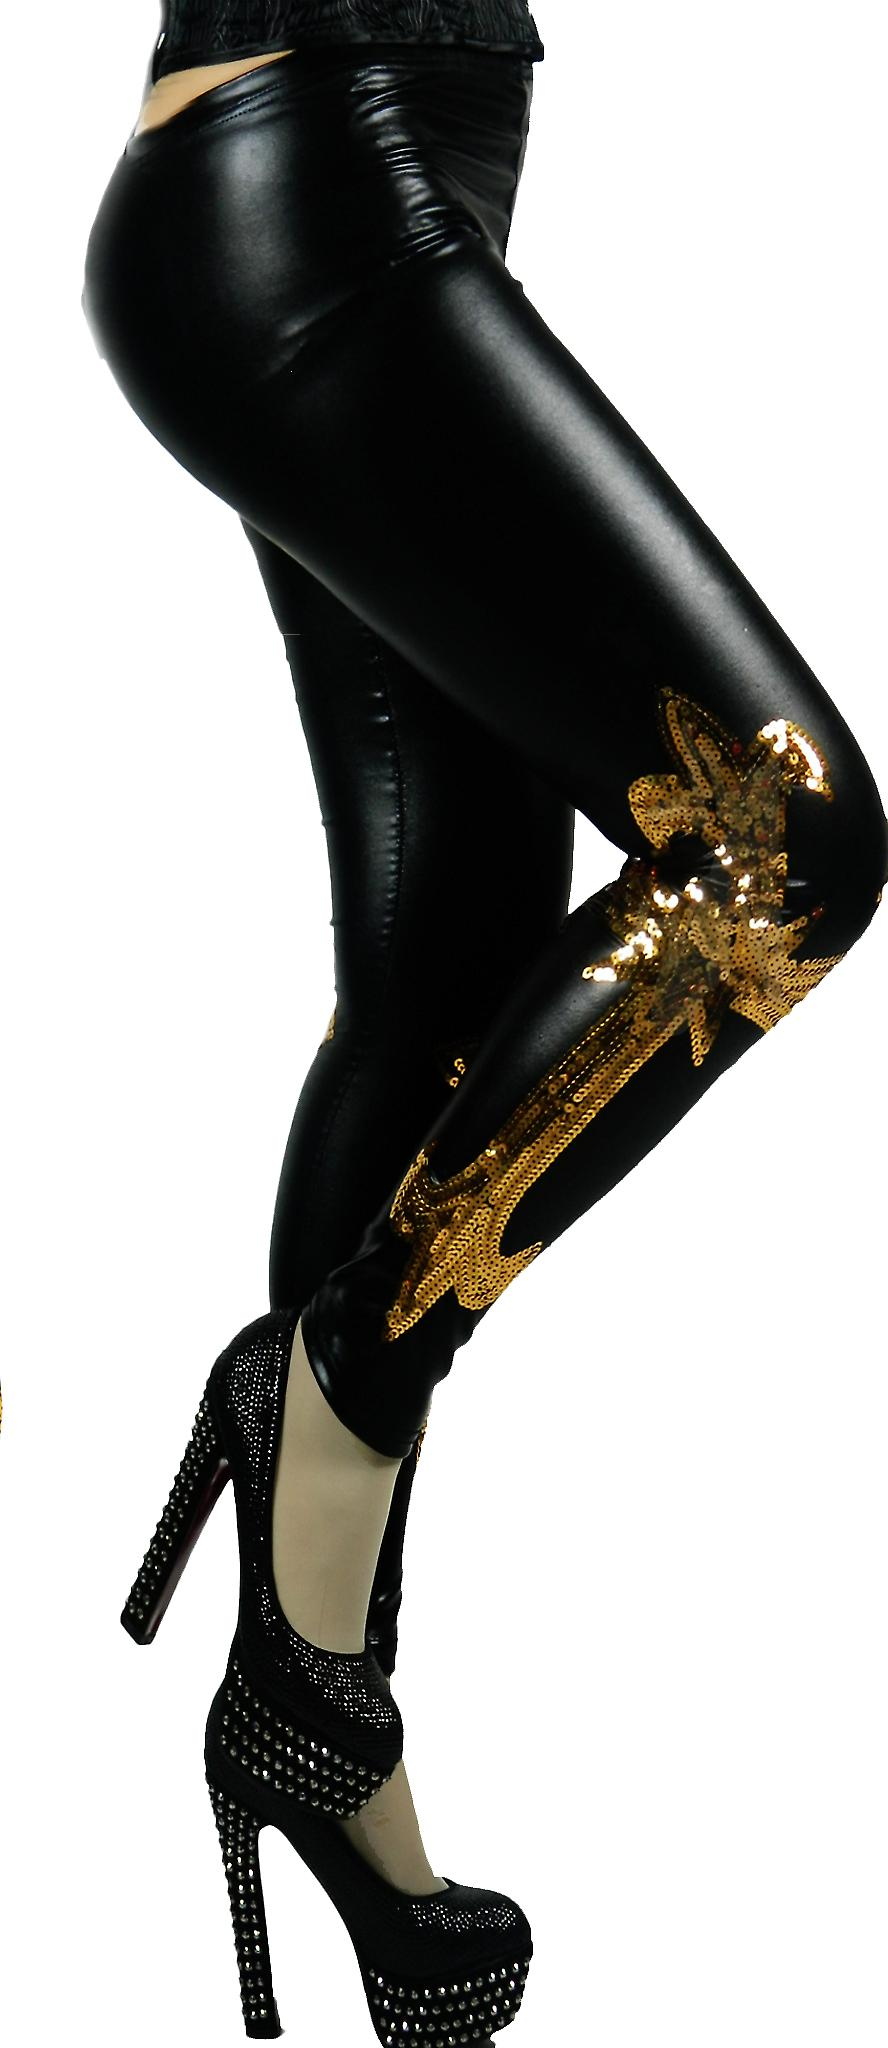 Waooh - Fashion - Leggins Muster Kreuz und goldenen sequins